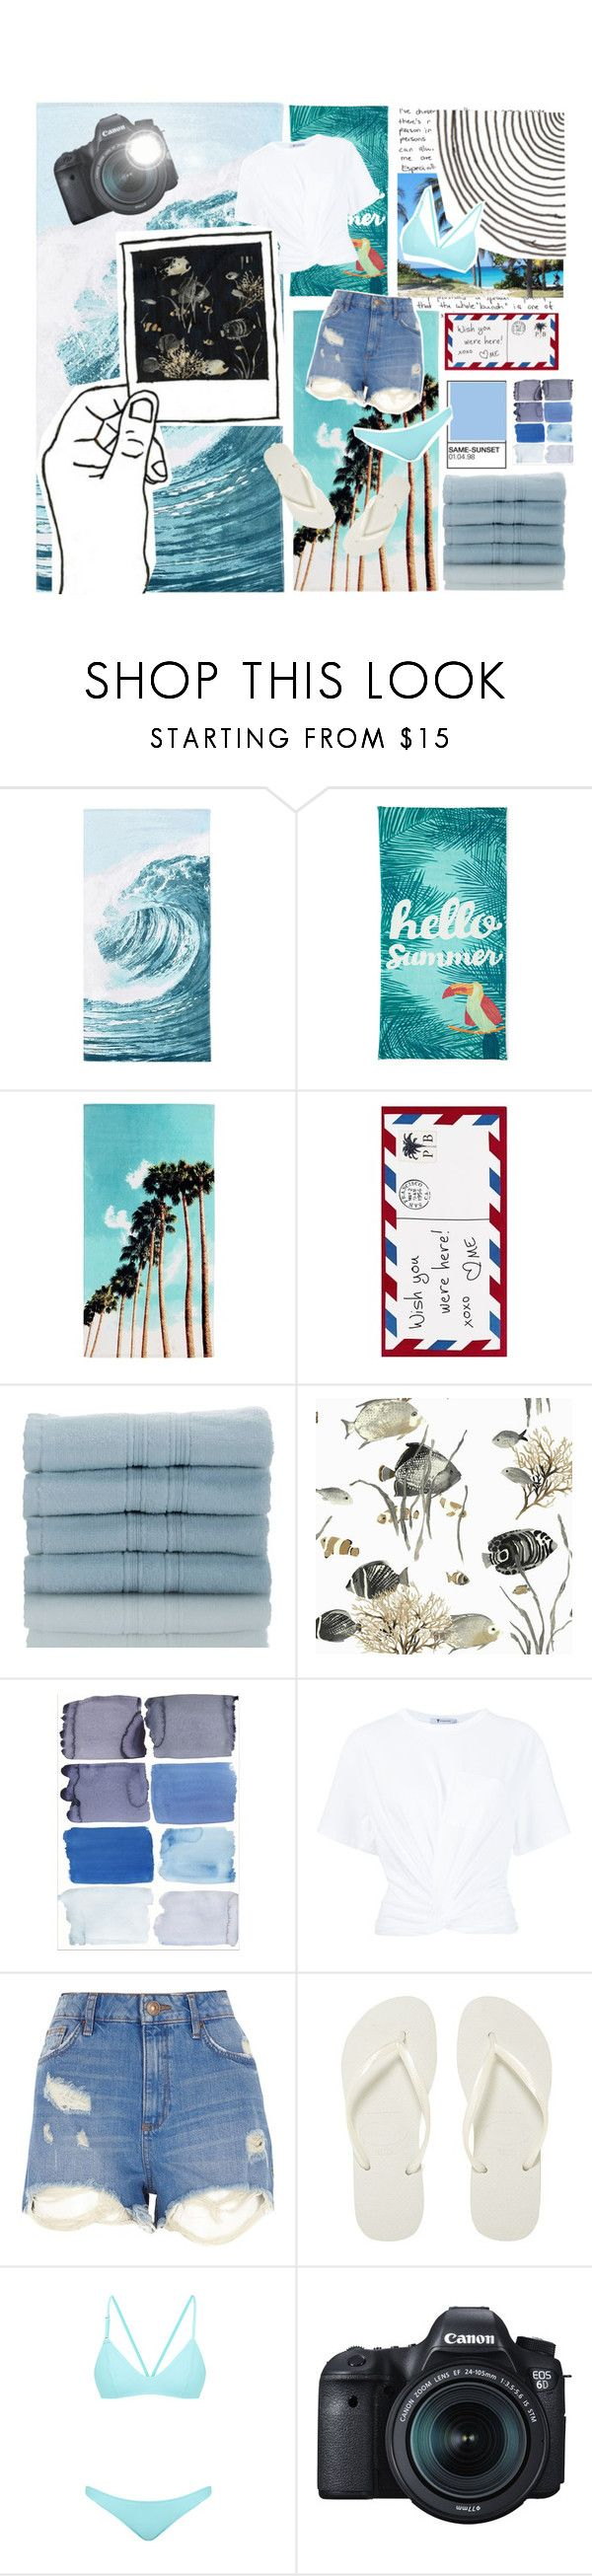 """""""Island getaway"""" by blacknwhitmay ❤ liked on Polyvore featuring PBteen, Outdoor Oasis, Pottery Barn, Nordstrom Rack, T By Alexander Wang, River Island, Havaianas, Bower, Eos and islandgetaway"""